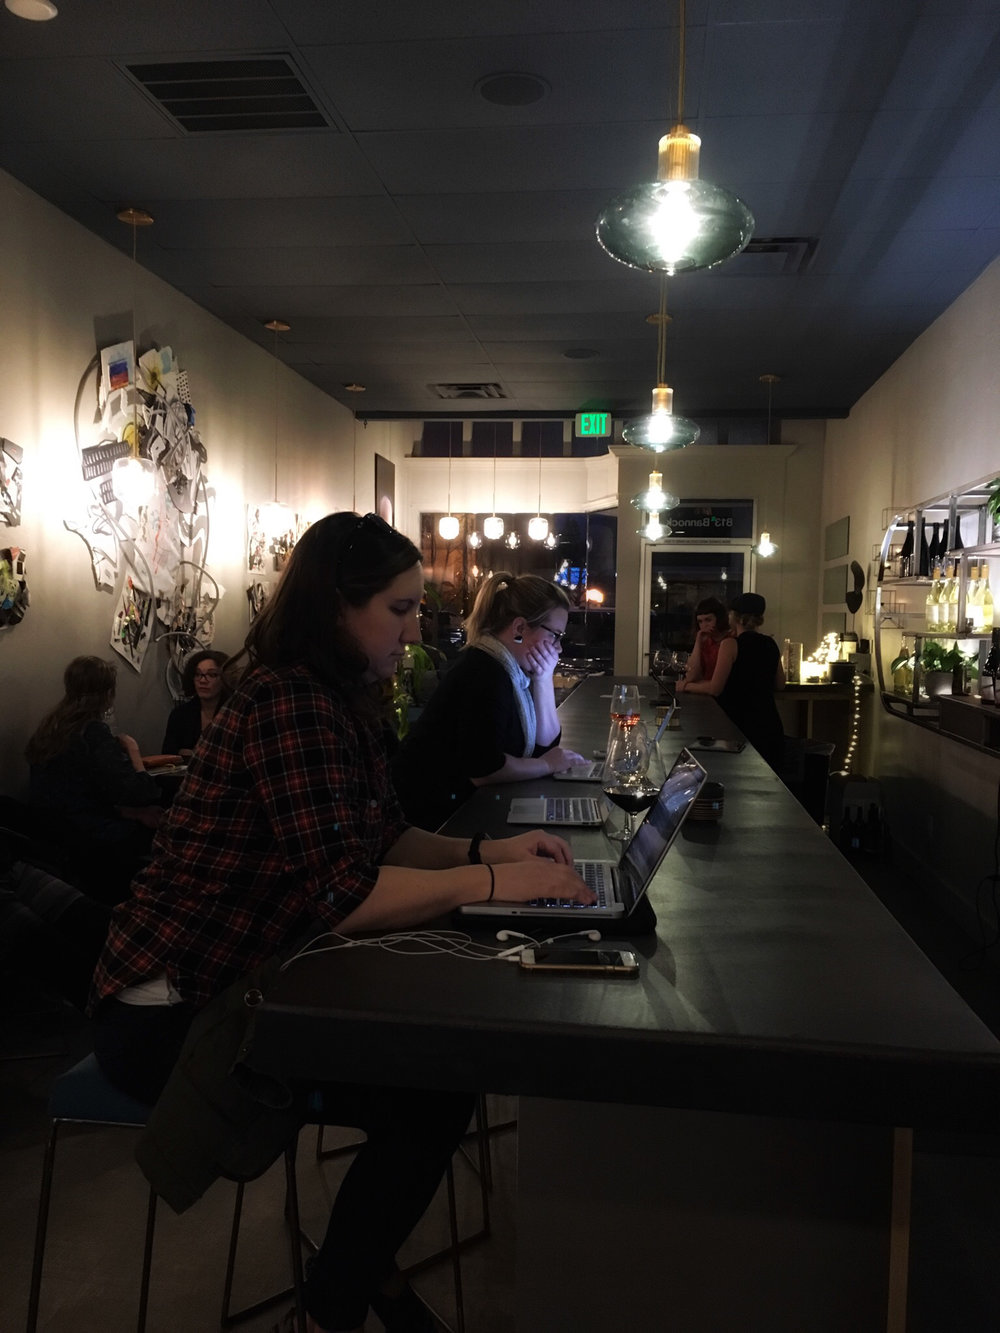 freewrite nite feb 2018 at Coiled Wine Bar